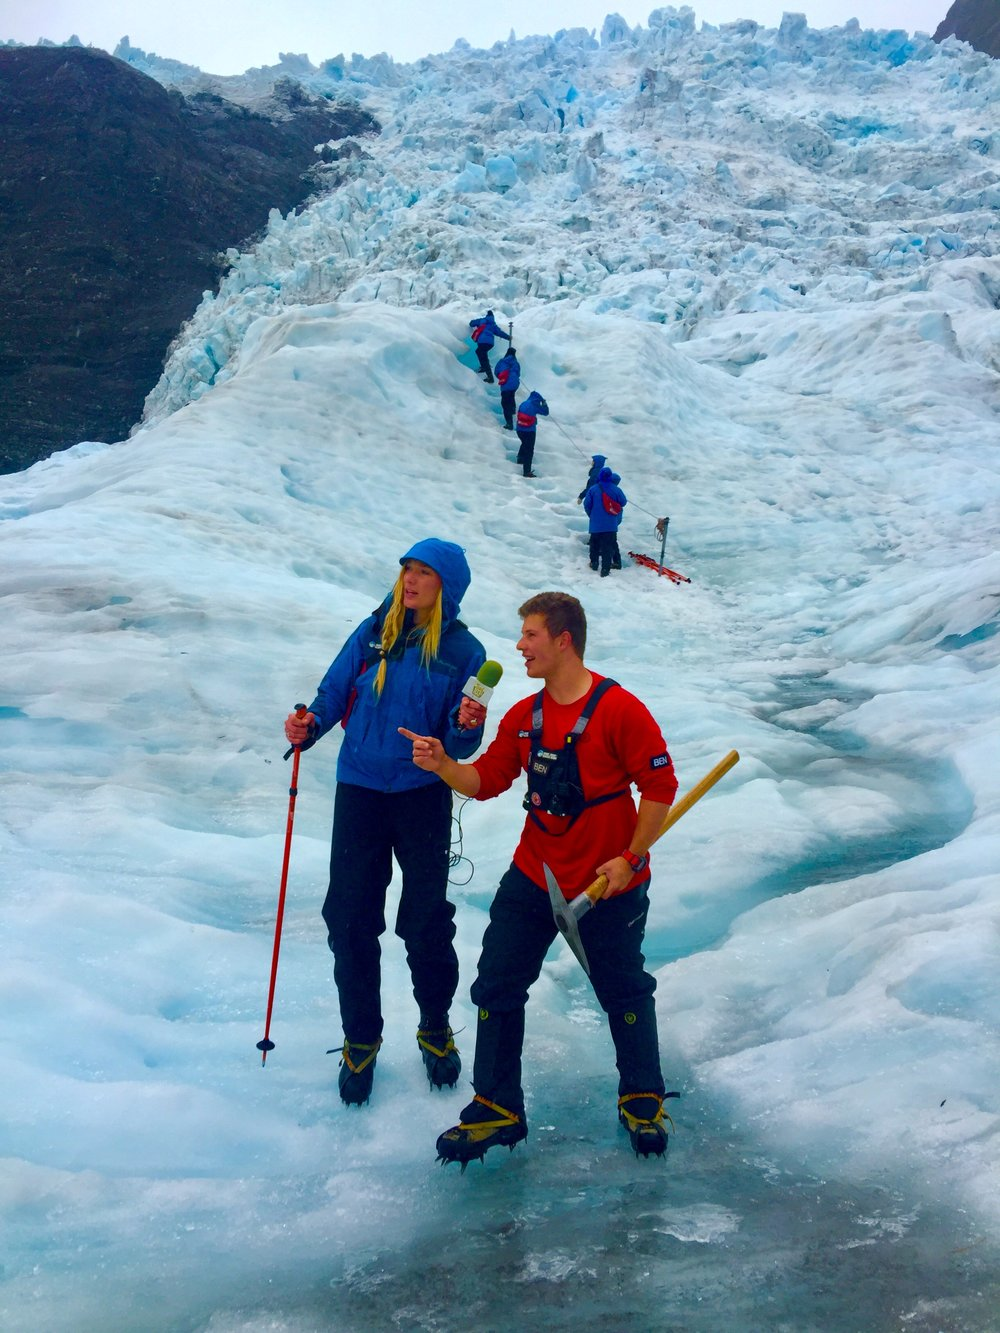 After a 5 minute helicopter flight from the Tasman Sea, this interview was recorded on a hanging glacier in the Southern Alps. Featuring glaciology of the planet with a focus on Franz Josef Glacier. Recorded on moving ice while trekking the Franz Josef Glacier on the west coast of New Zealand's South Island. Featuring the glaciology of New Zealand.